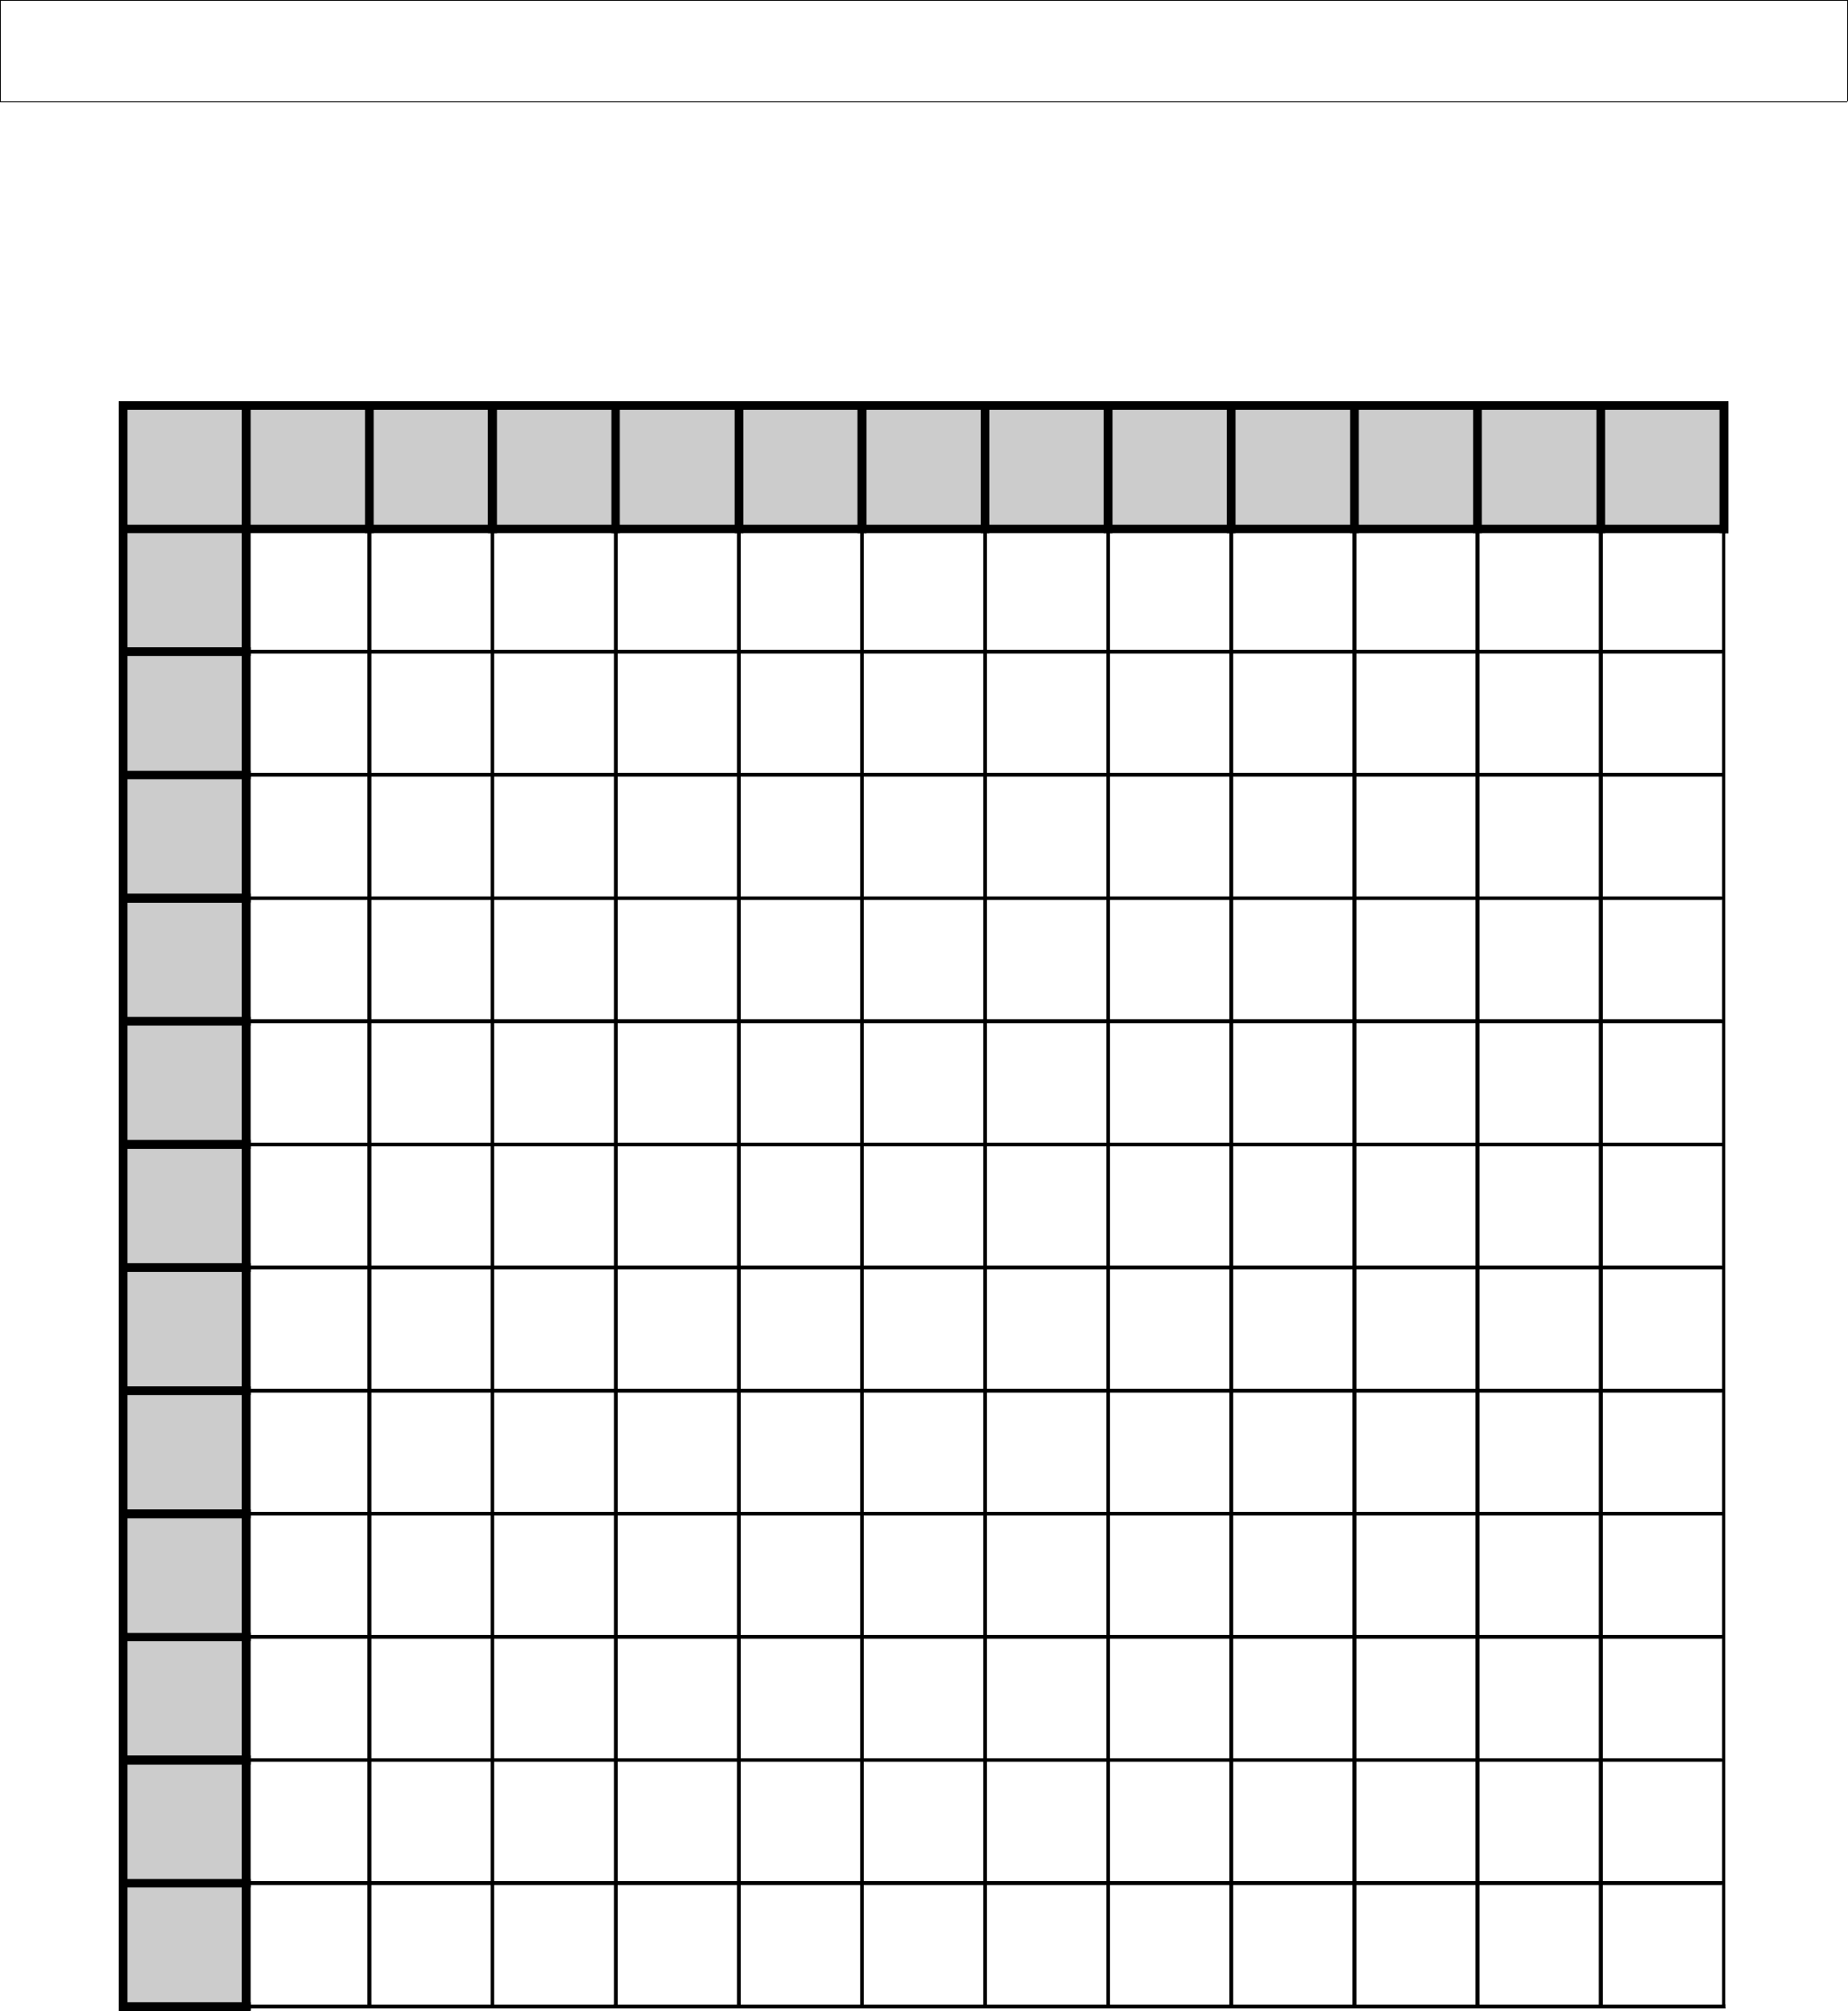 Blank Multiplication Table Worksheet - humorholics